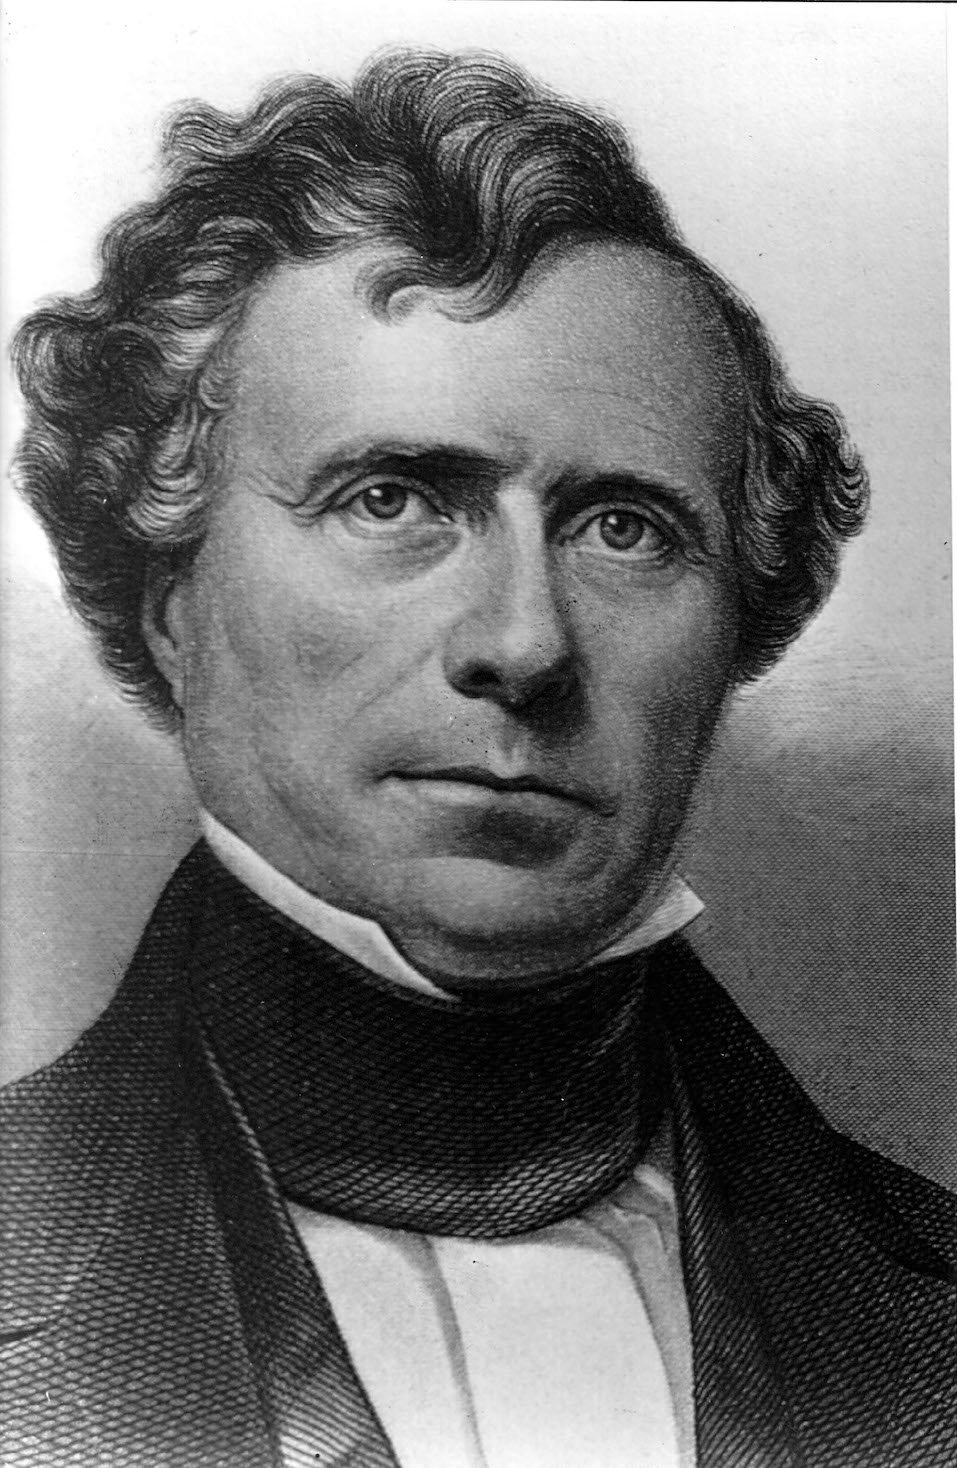 President Franklin Pierce